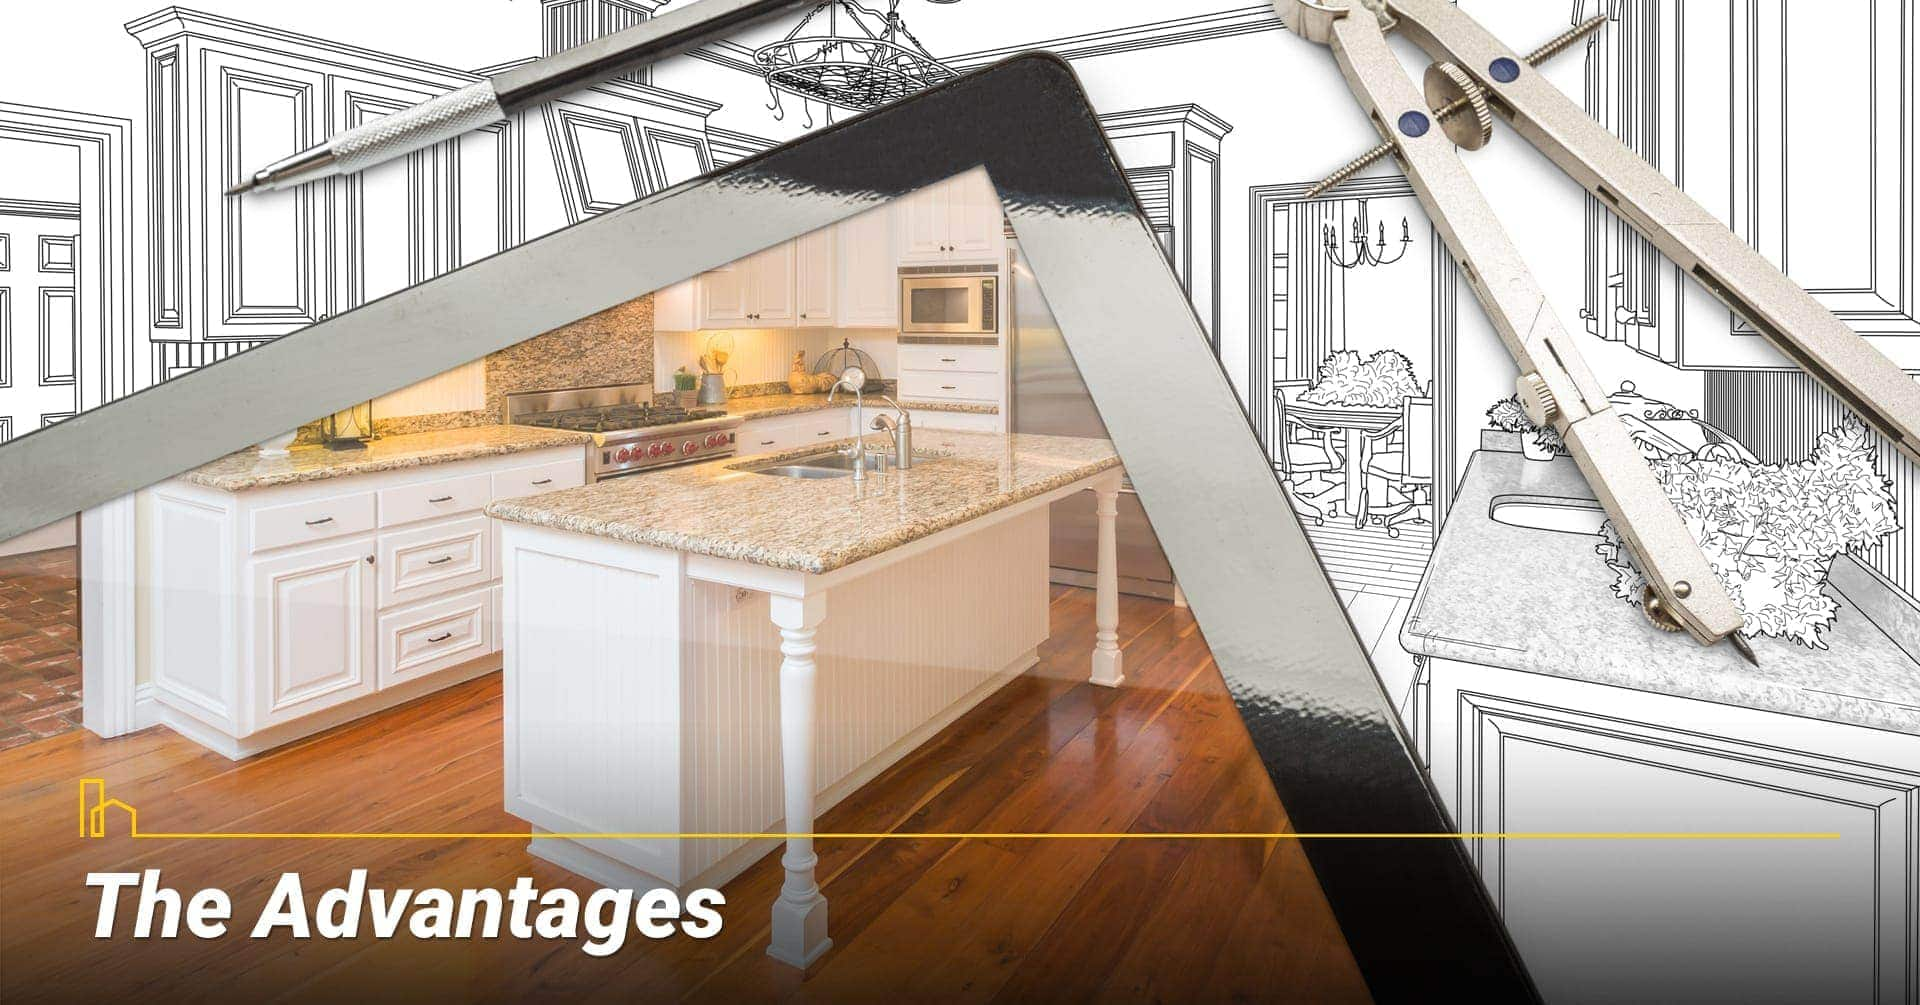 The Advantages, the advantages of buying a home